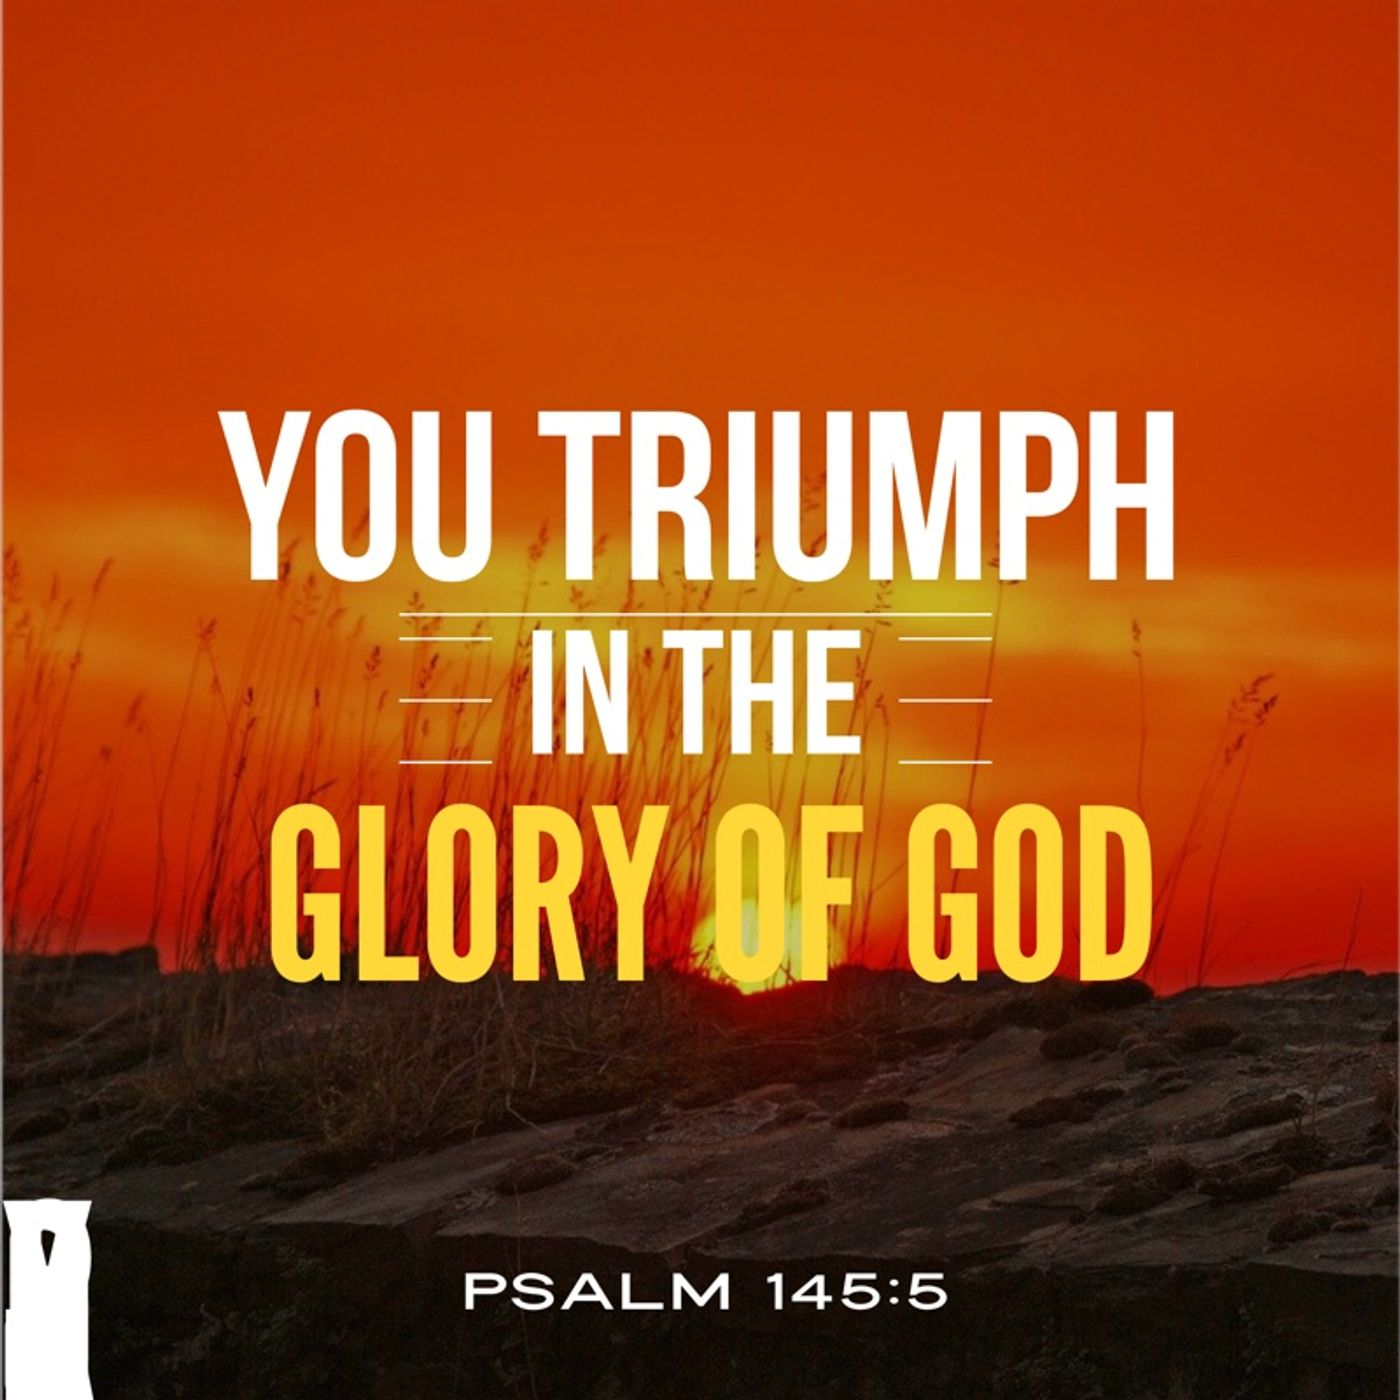 Prayer to Know God's Glory is Your Victory